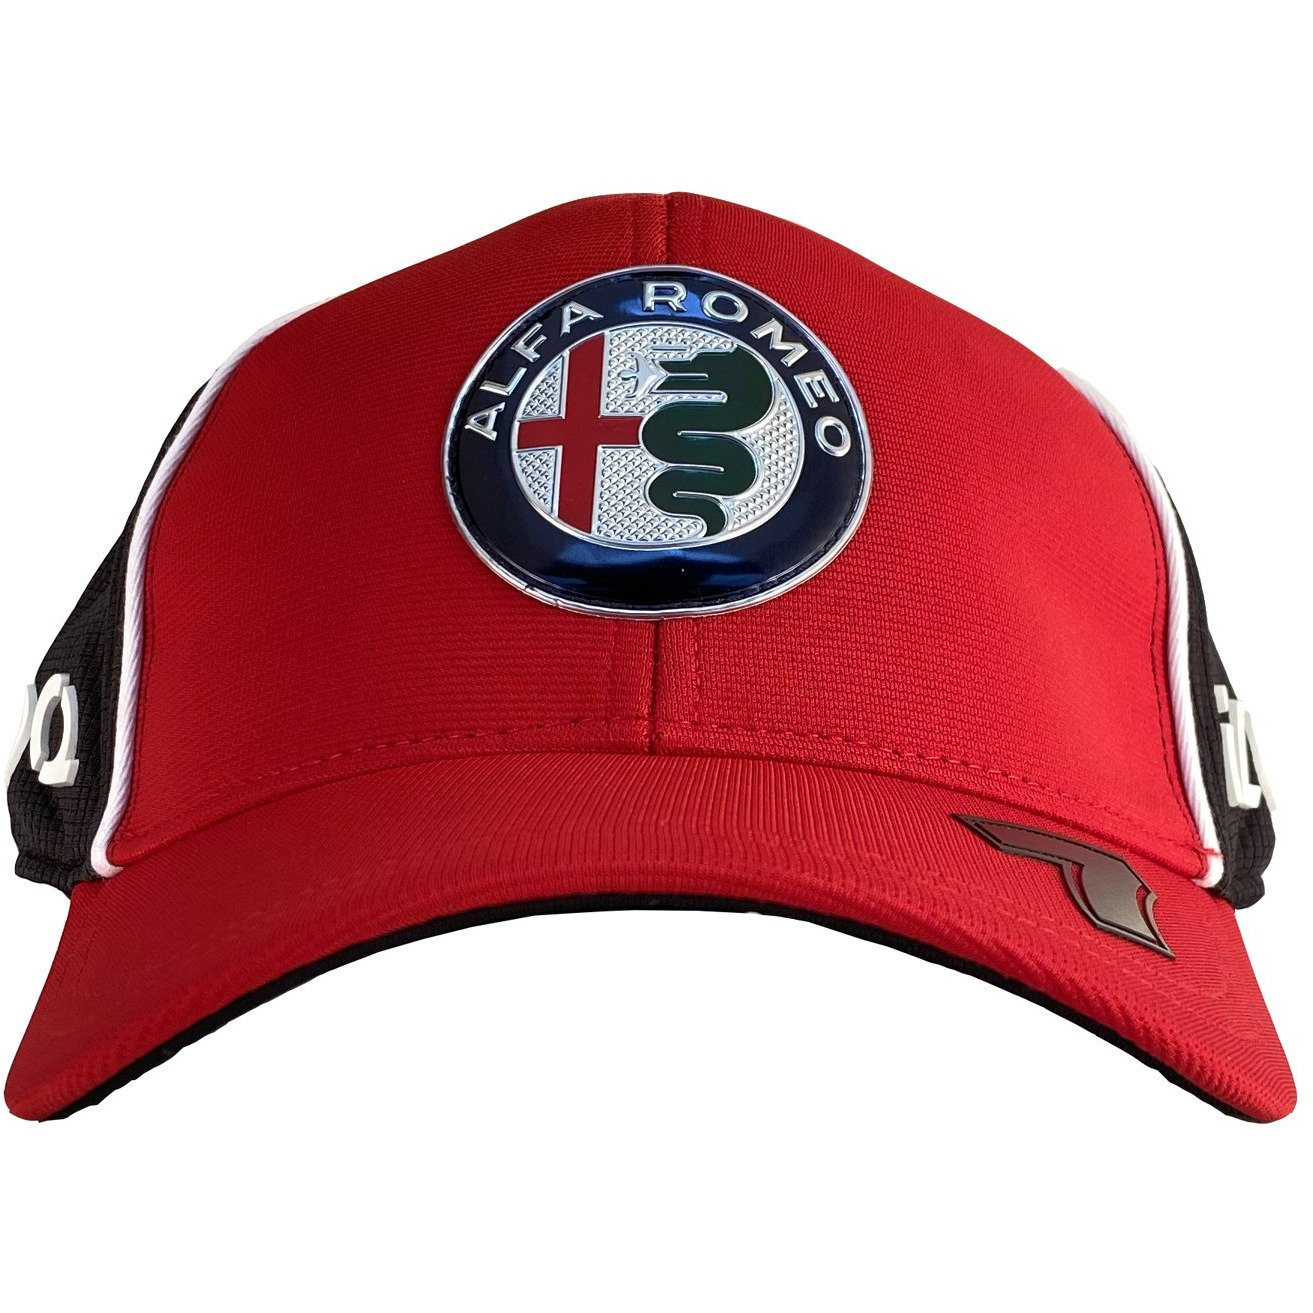 Kids Red Alfa Romeo Racing F1 2020 Team Kimi R/äikk/önen Baseball Hat